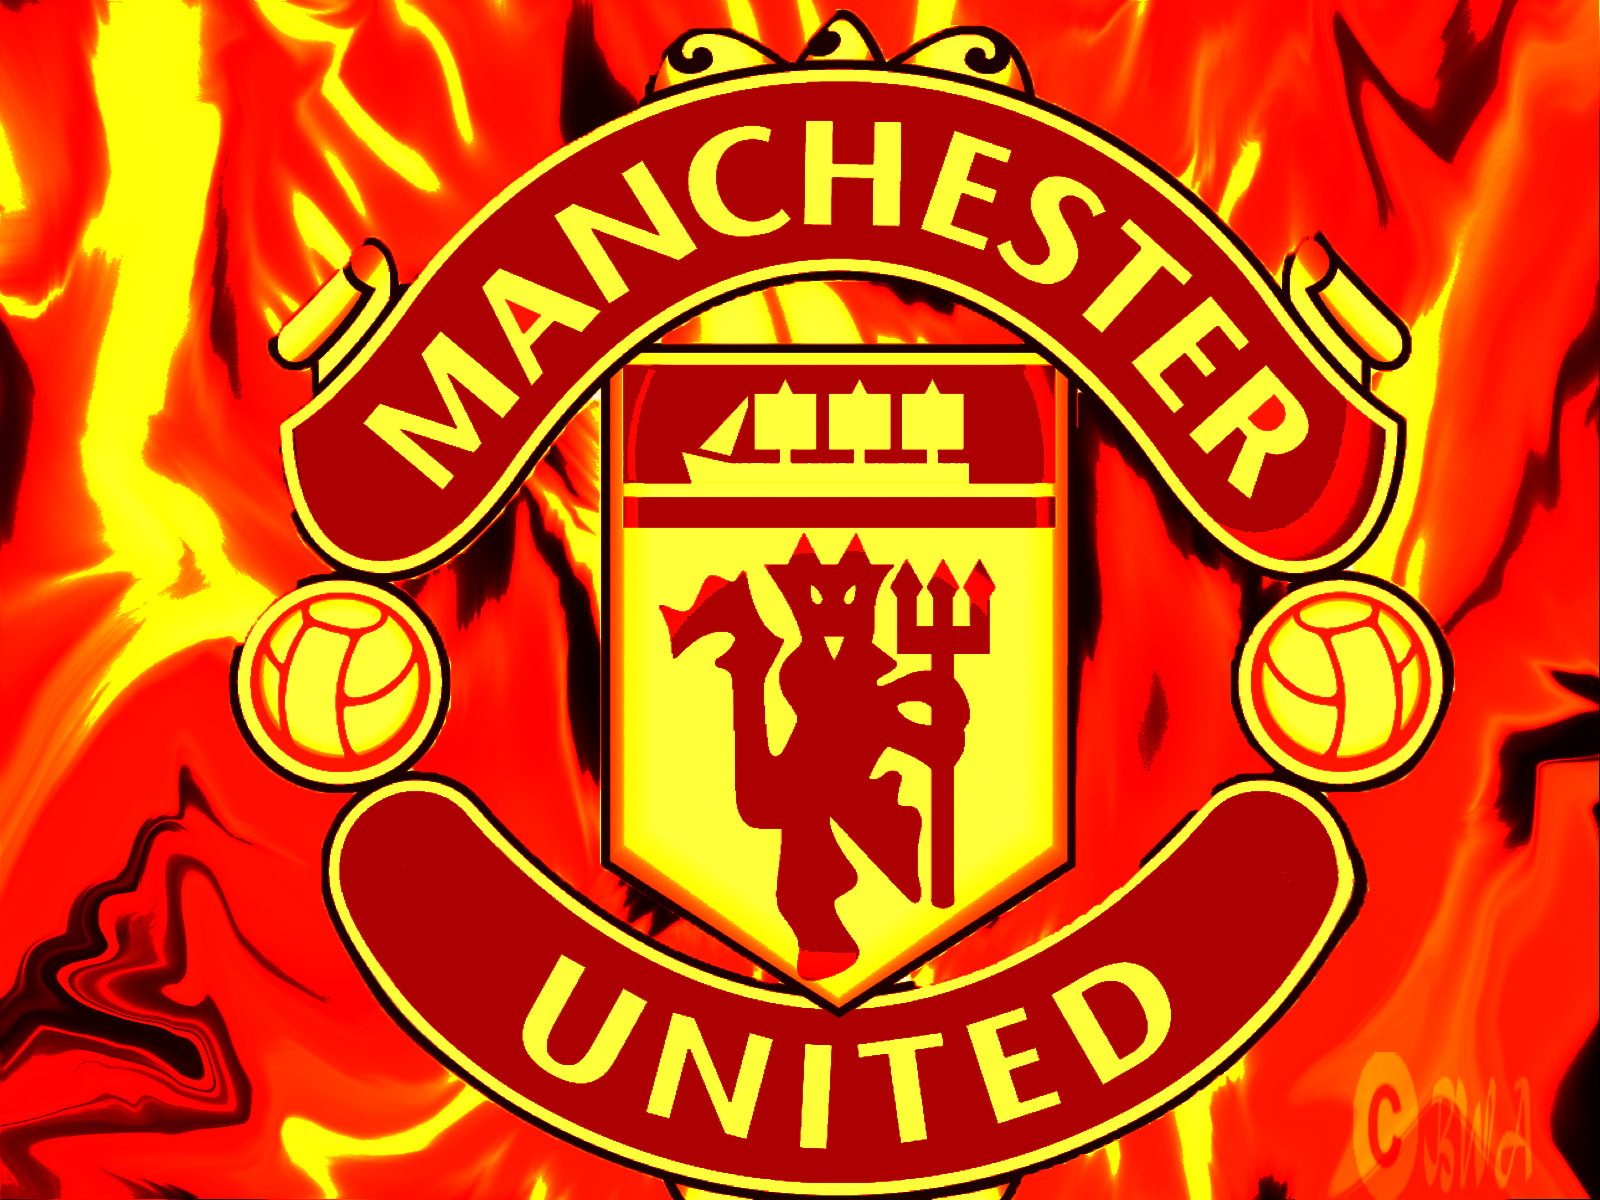 manchester united hd wallpapers football utd background manu fc player recent players